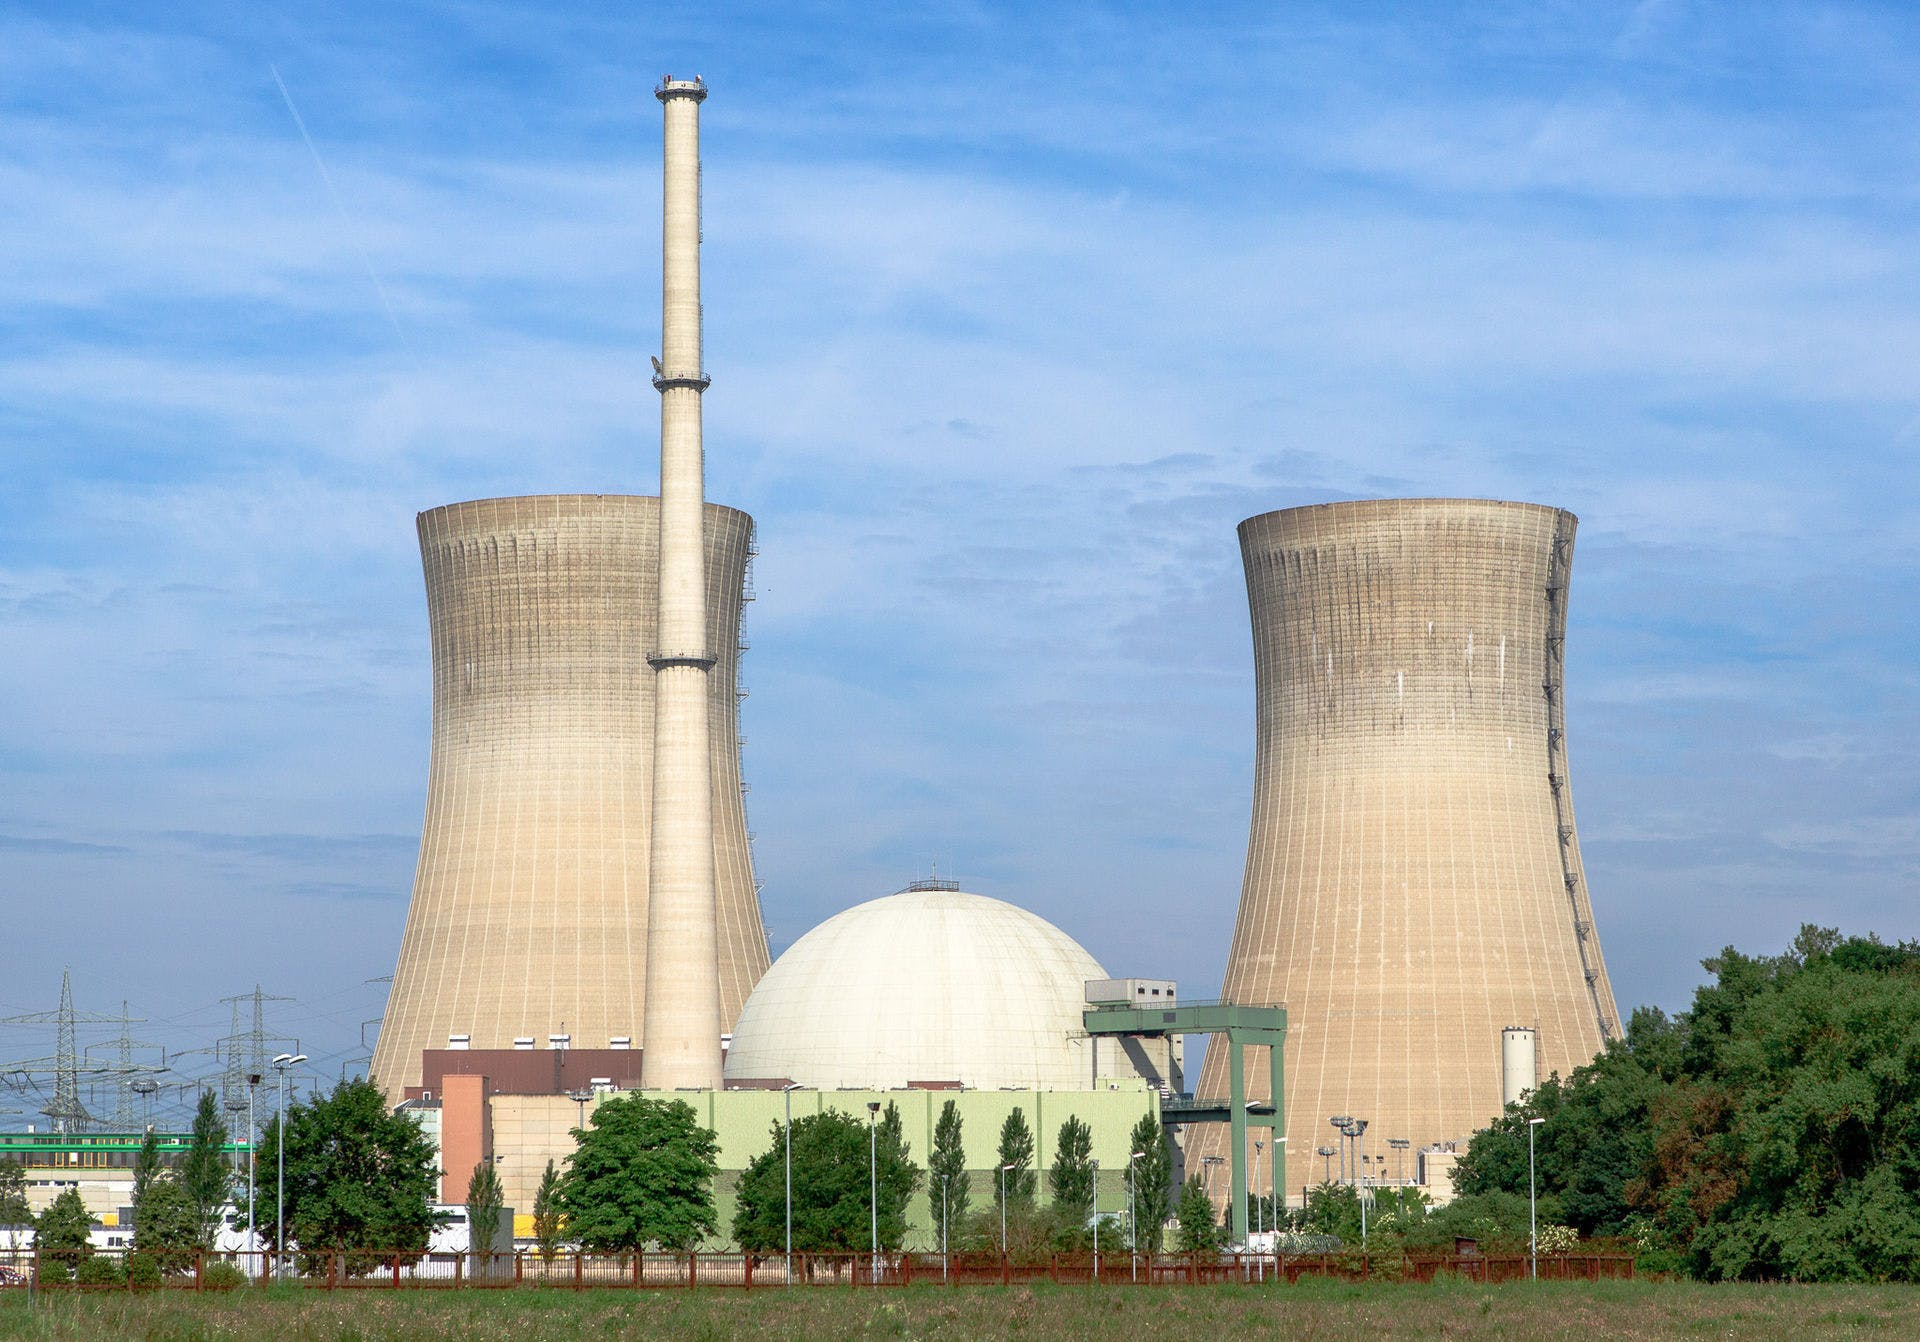 The 7 reasons why nuclear energy is not the answer to solve climate change